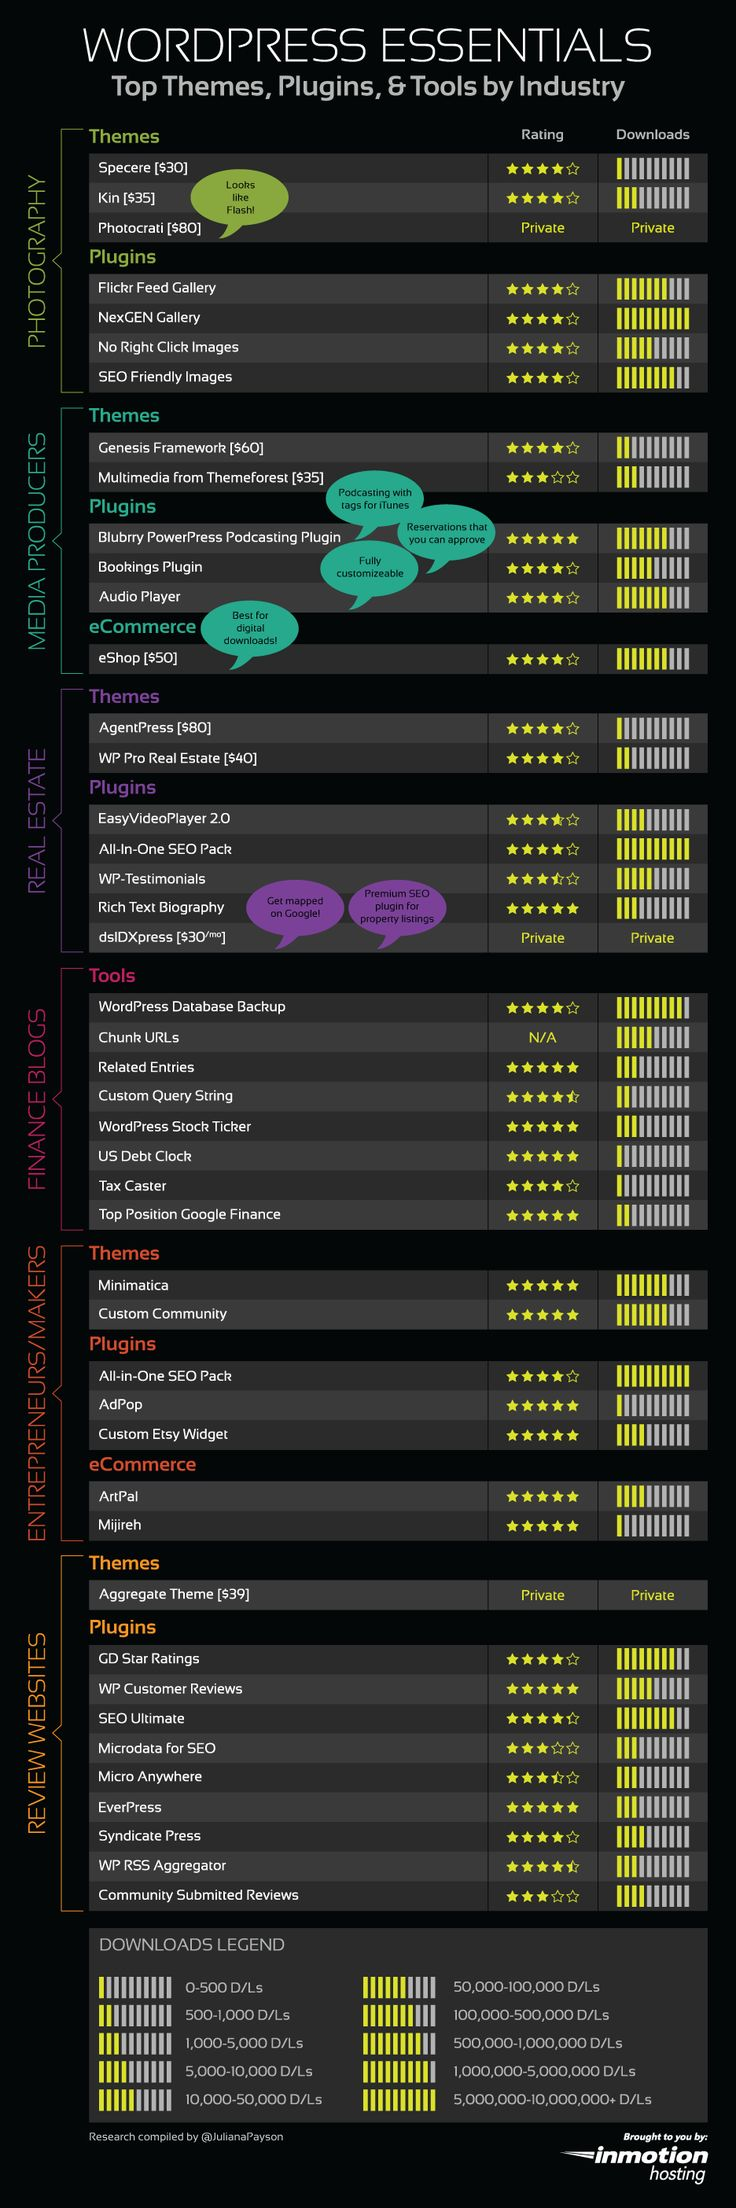 #WordPress Top Themes, Plugins and Tools #infographic